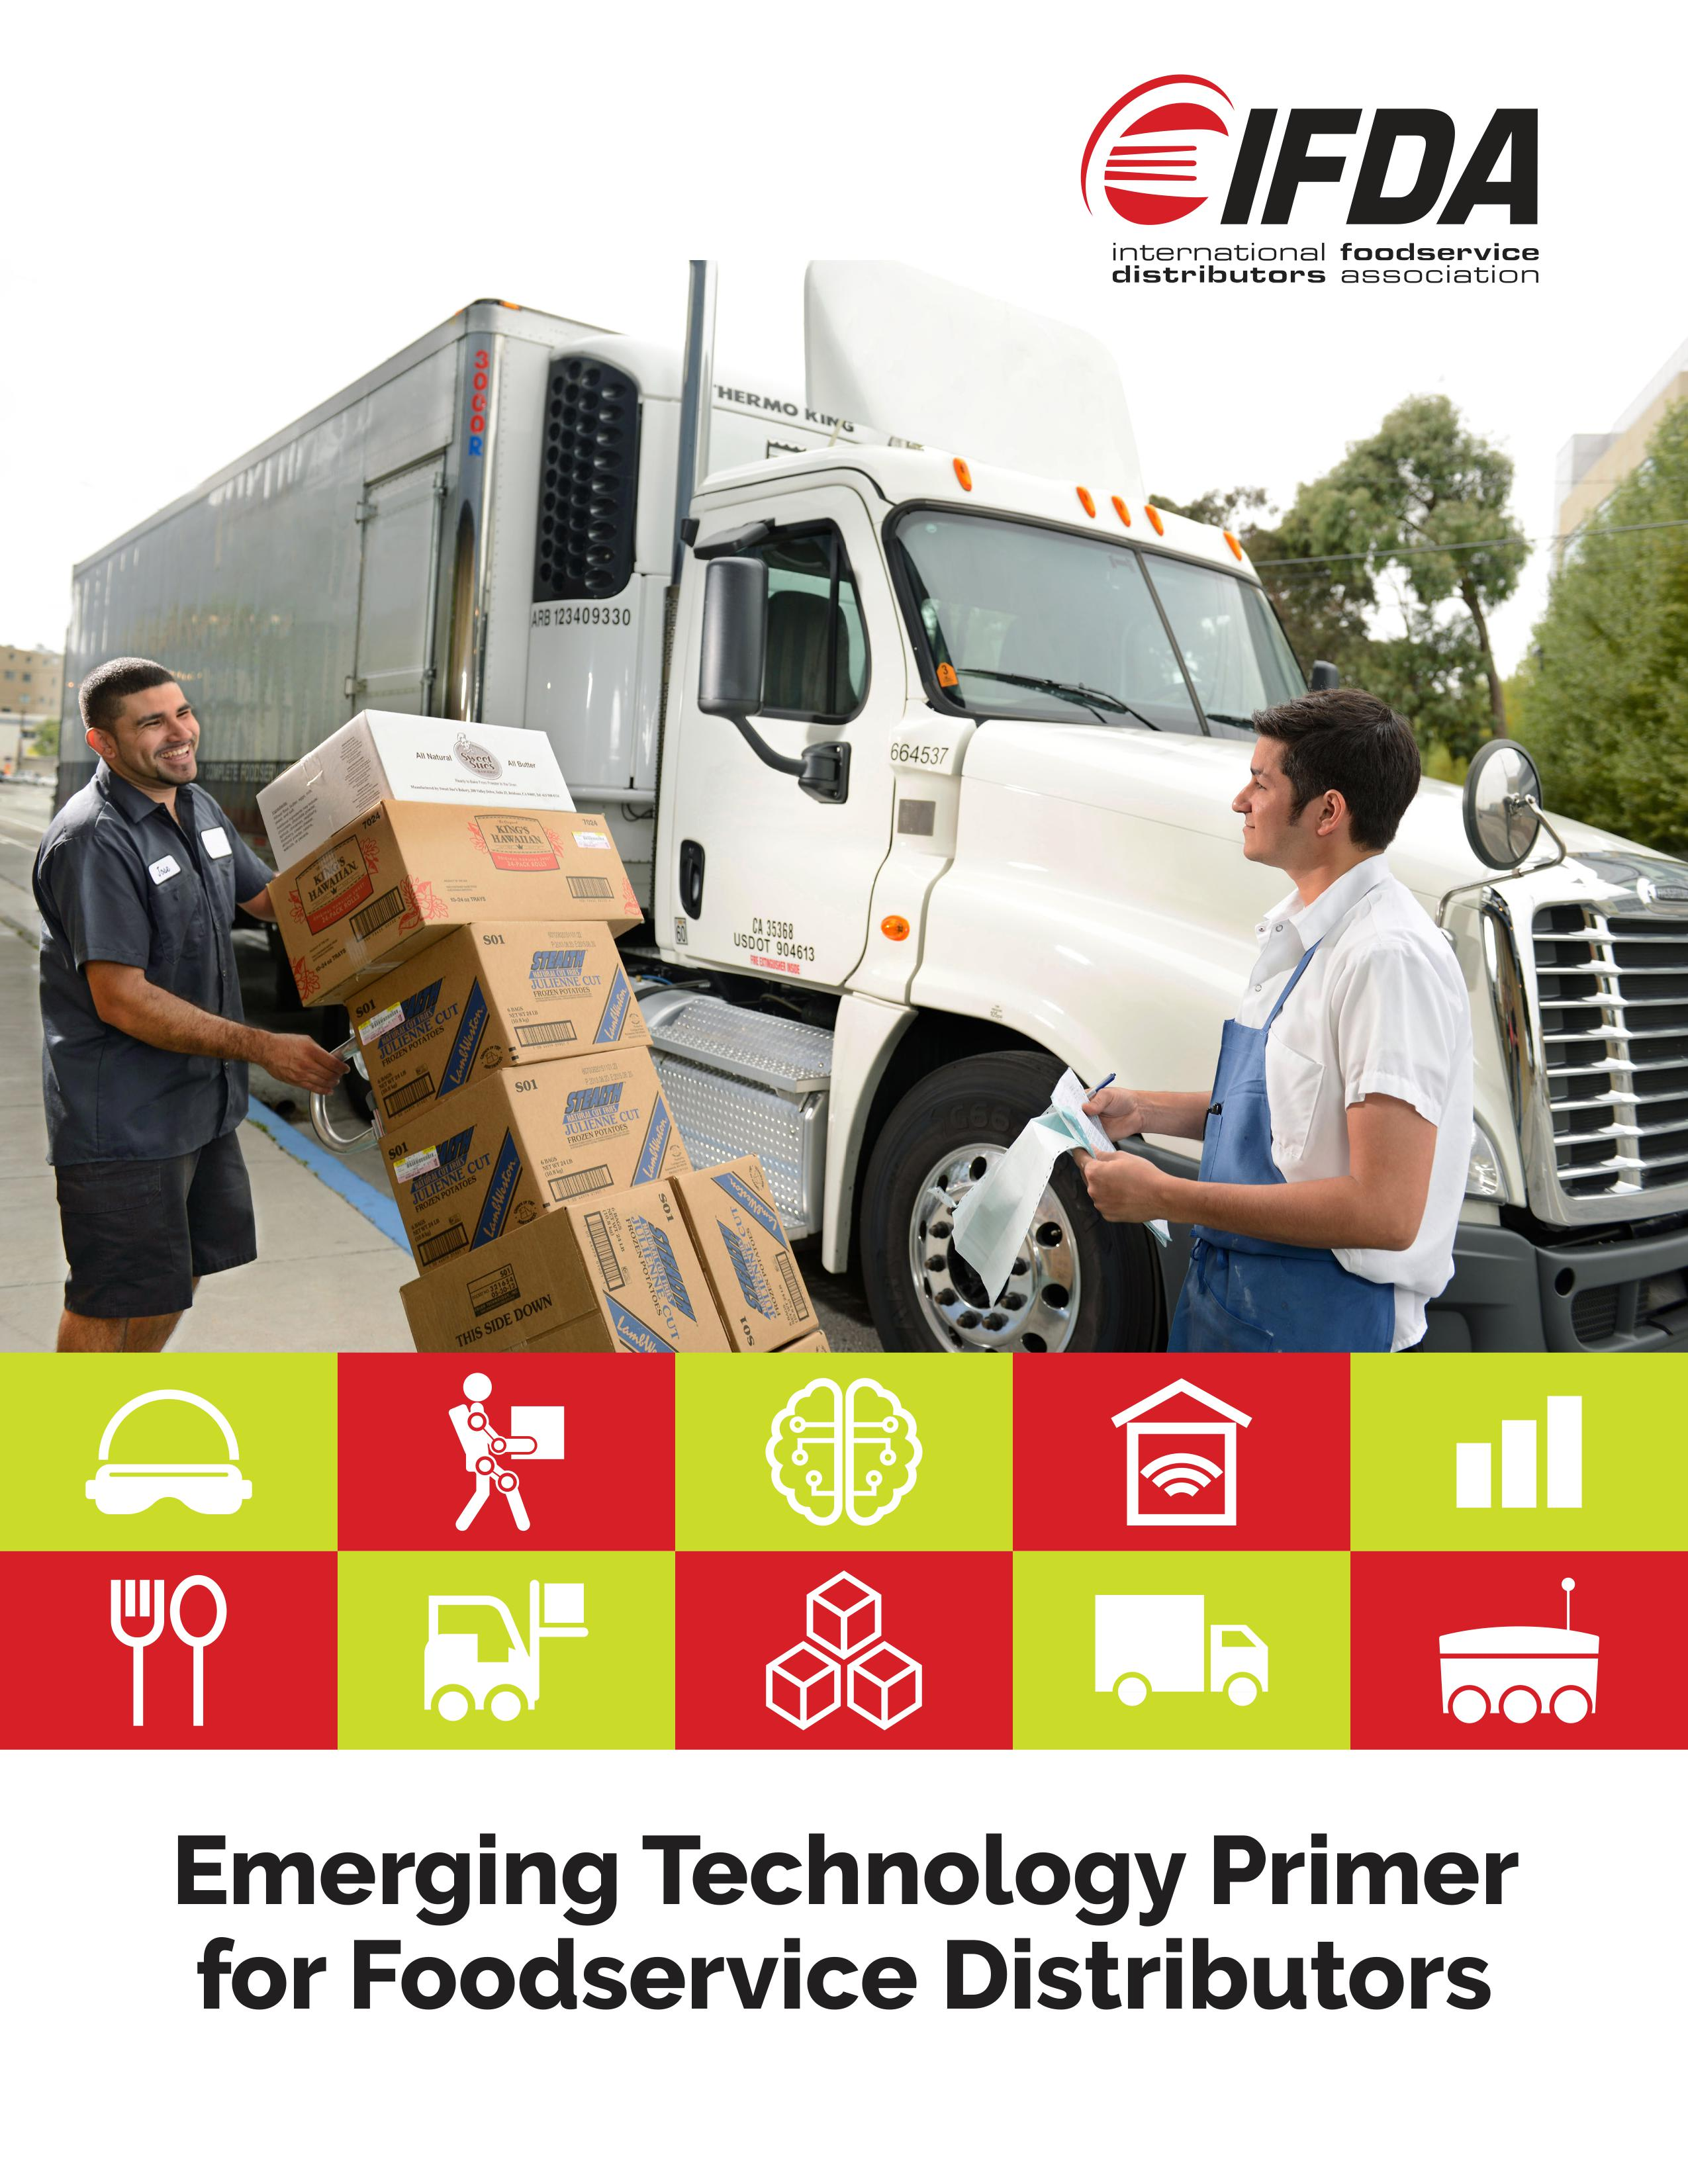 IFDA Releases Emerging Technology Primer for Foodservice Distributors